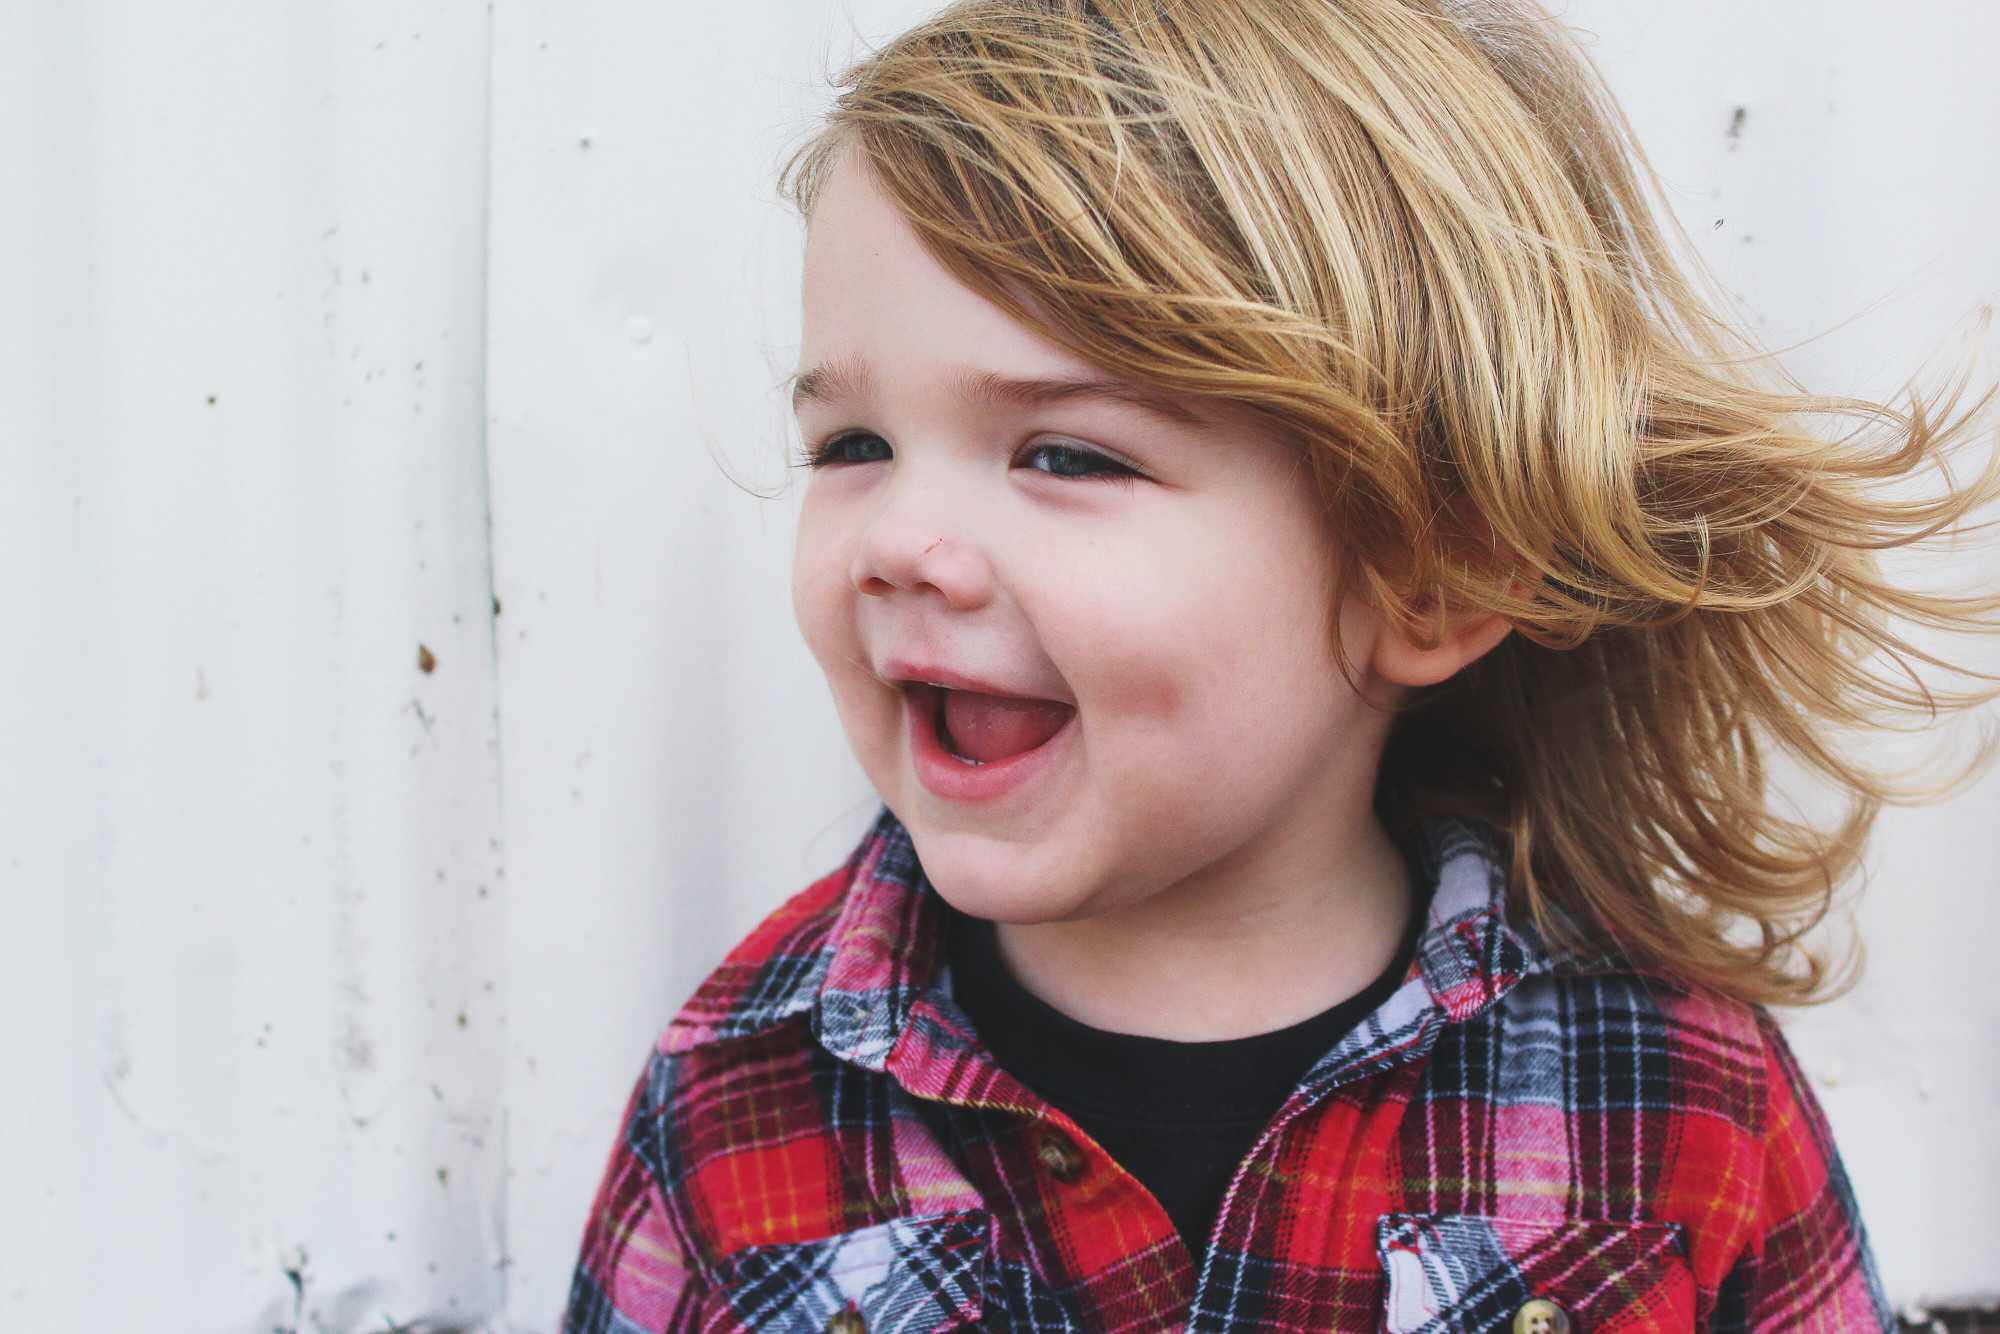 Toddler Hairstyle Boy  30 Toddler Boy Haircuts For Cute & Stylish Little Guys